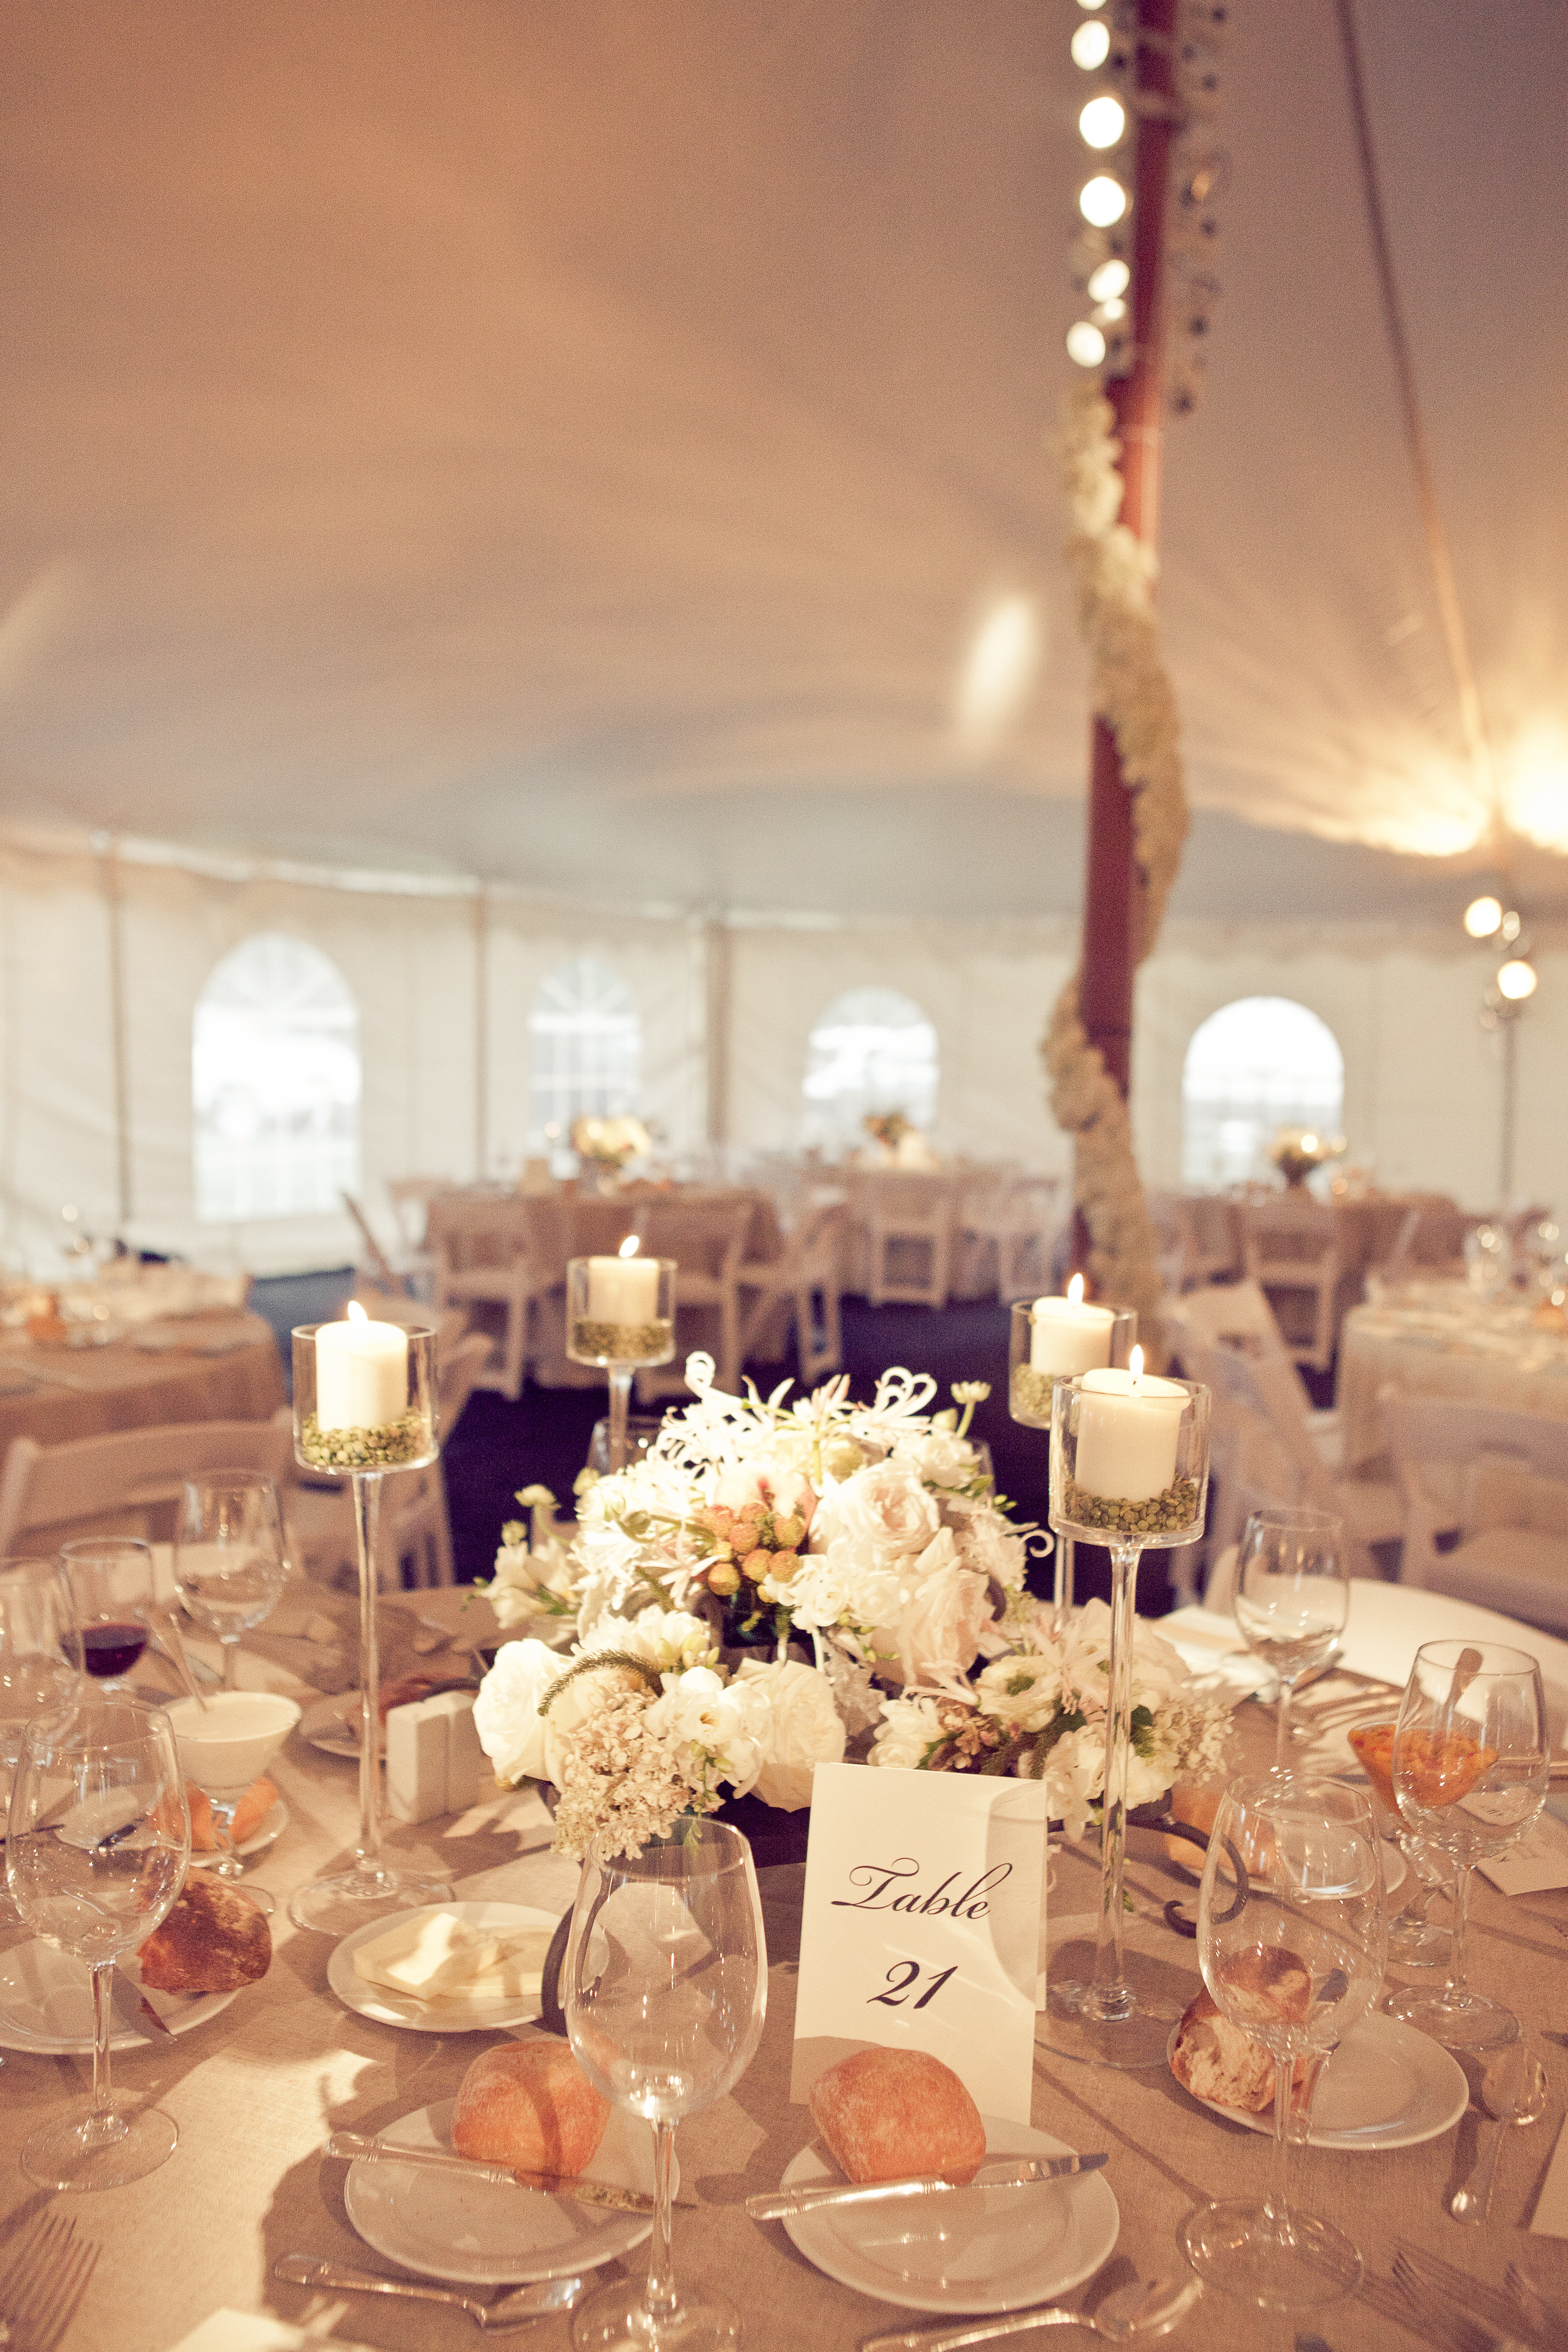 Wedding tent with air conditioning